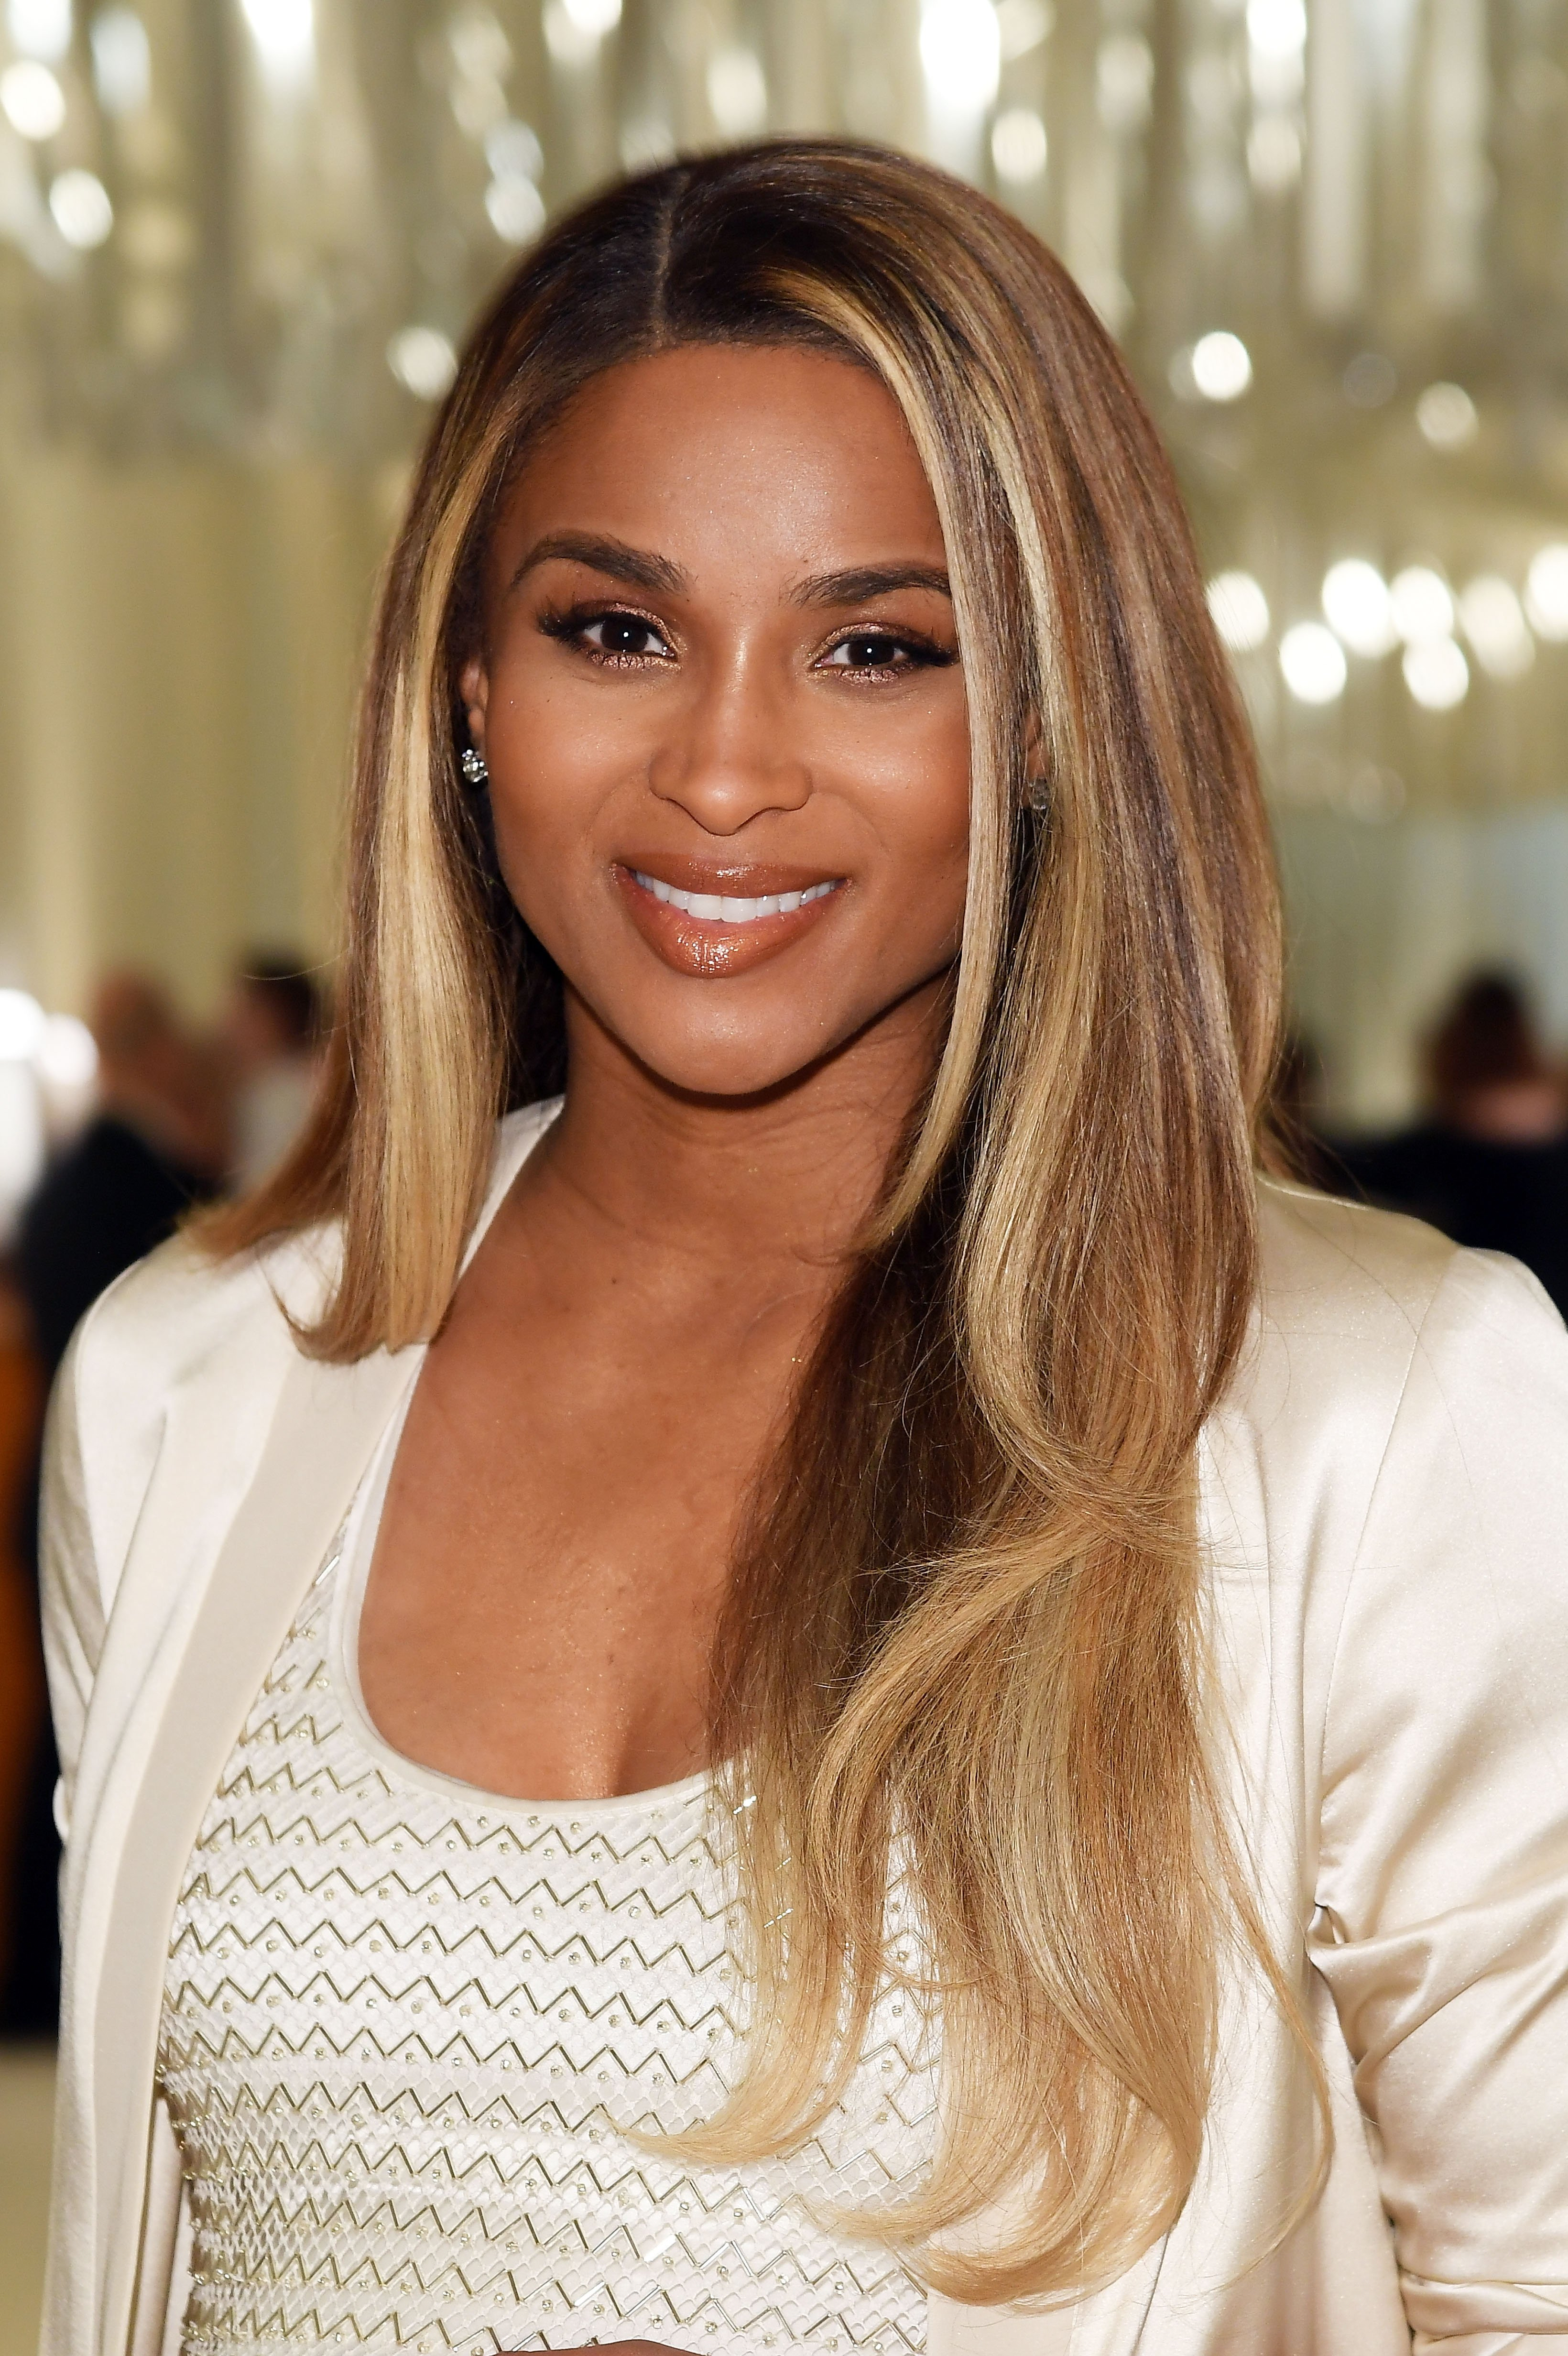 Ciara at the 25th Annual Elton John AIDS Foundation's Oscar Viewing Party on February 26, 2017 in Los Angeles, California. | Source: Getty Images